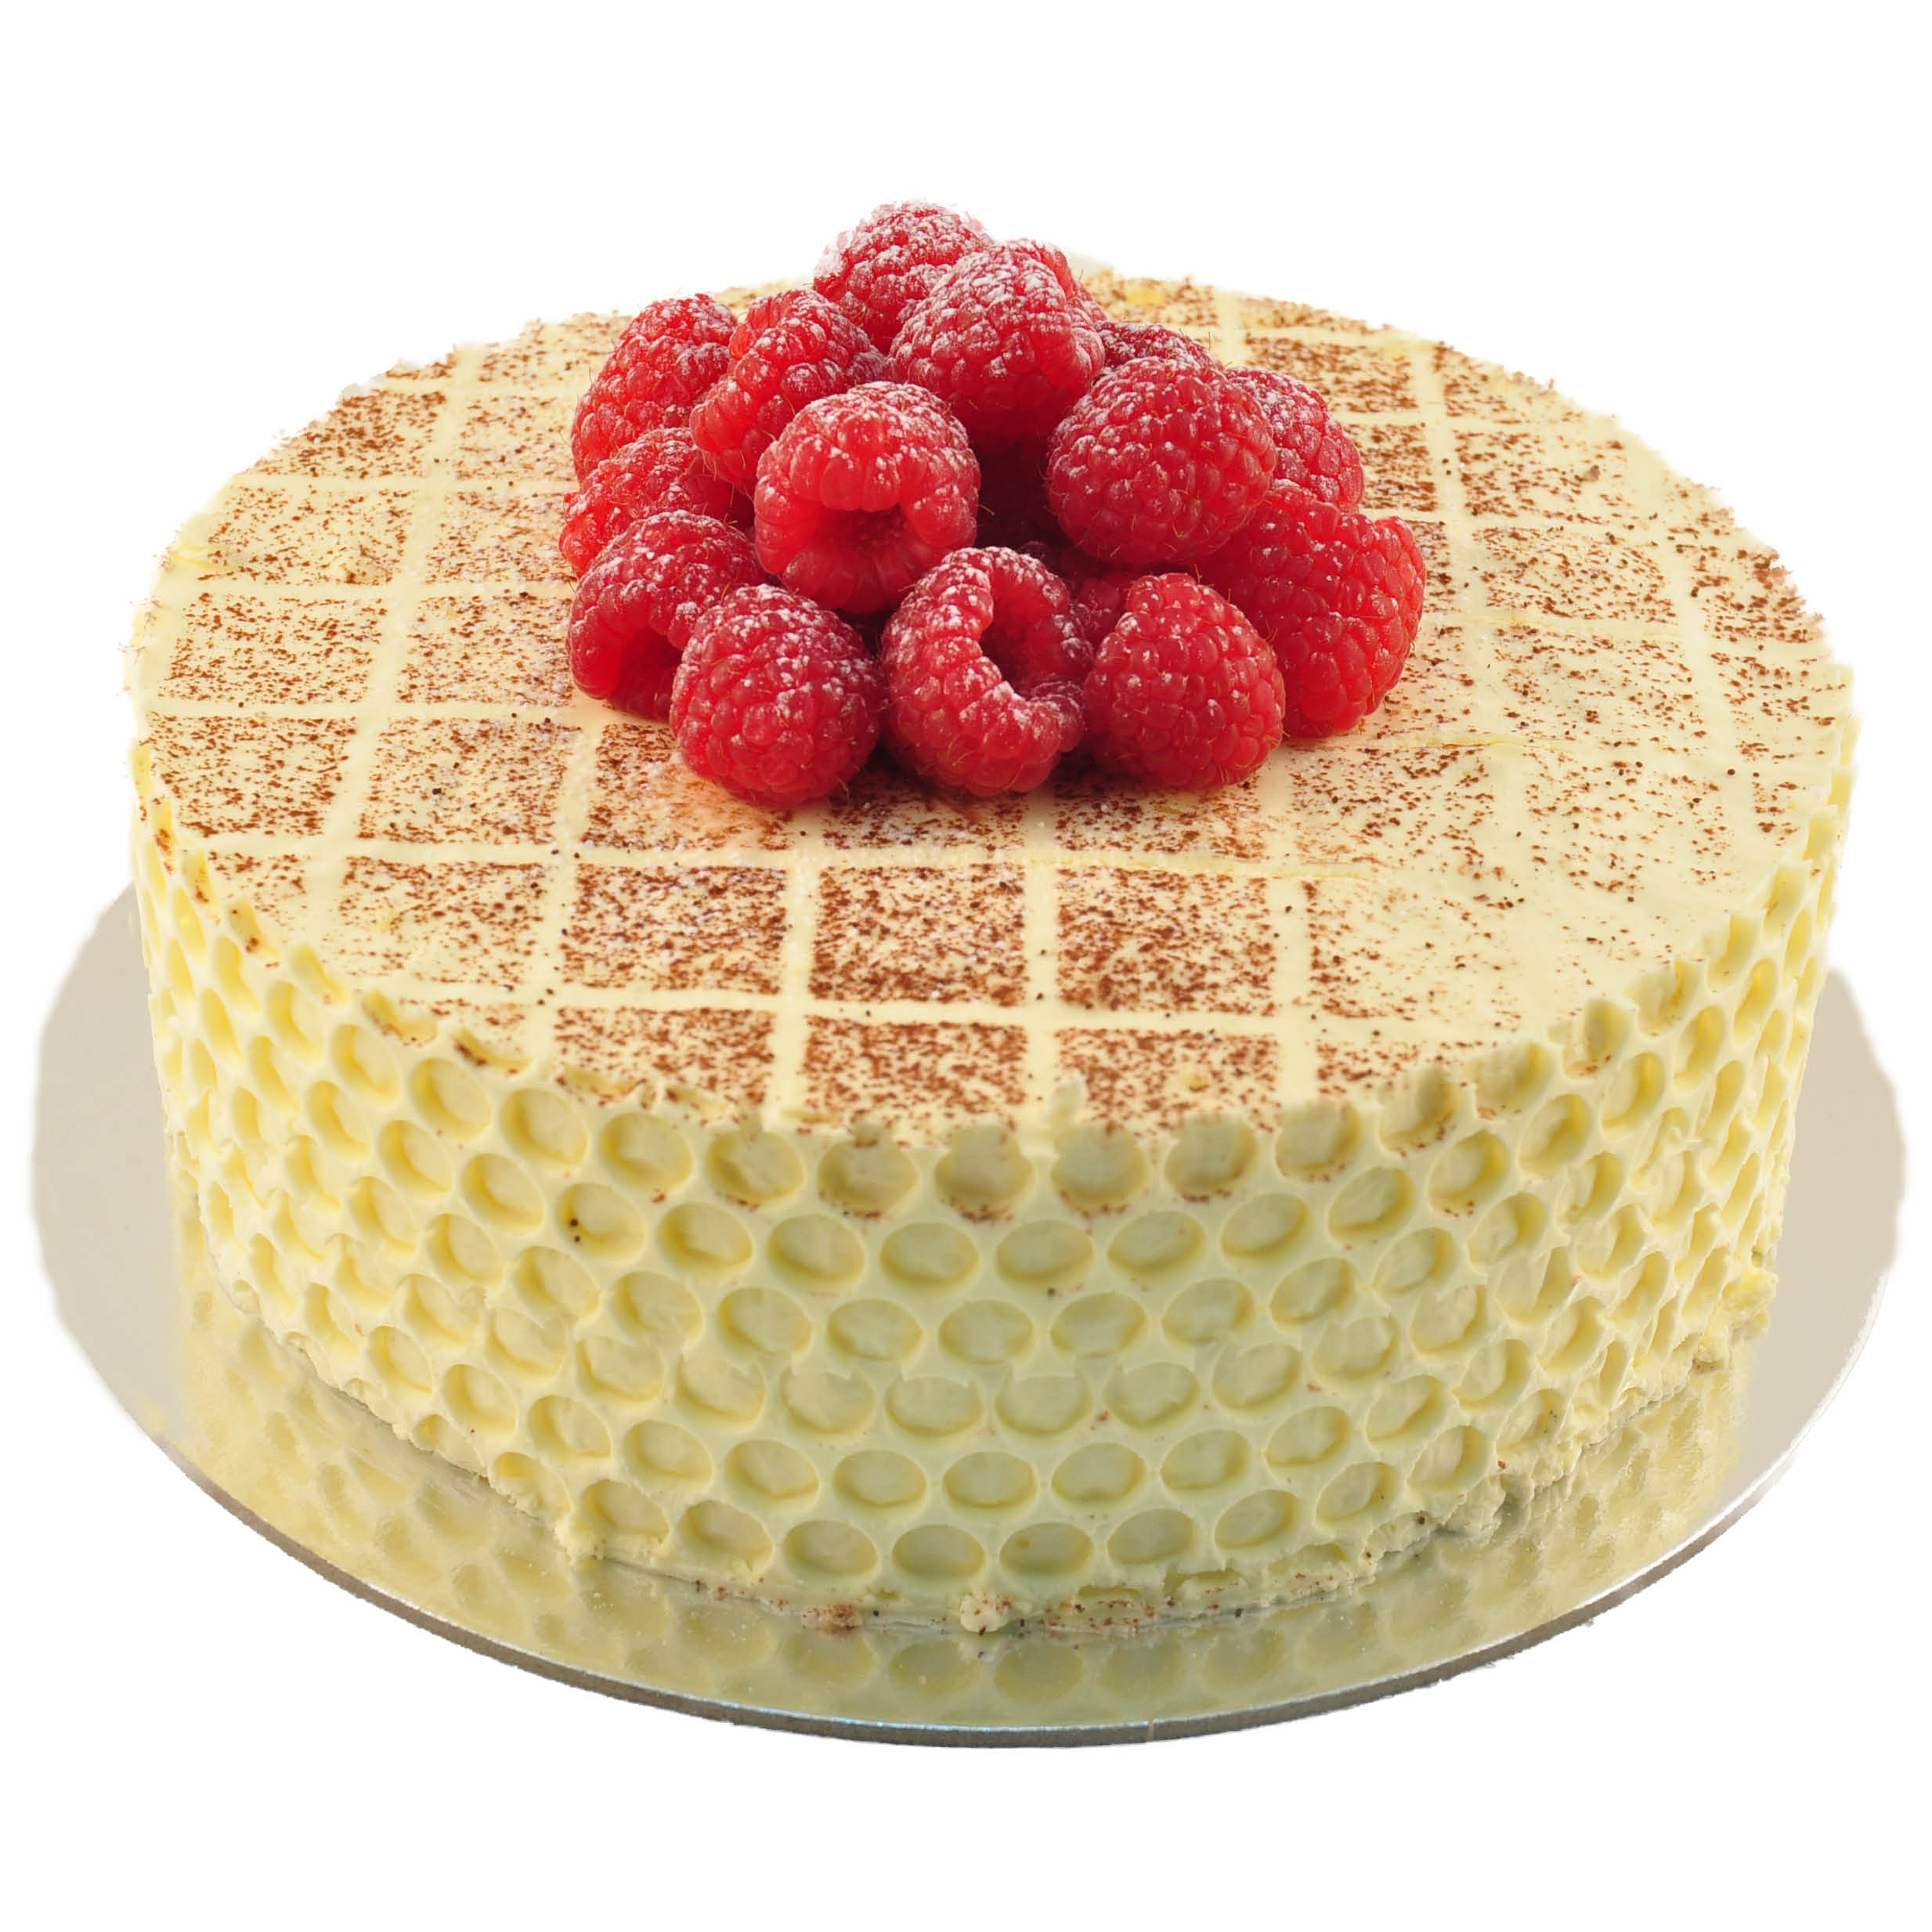 Jam And Chantilly Cream Sponge Cake With Fresh Raspberries